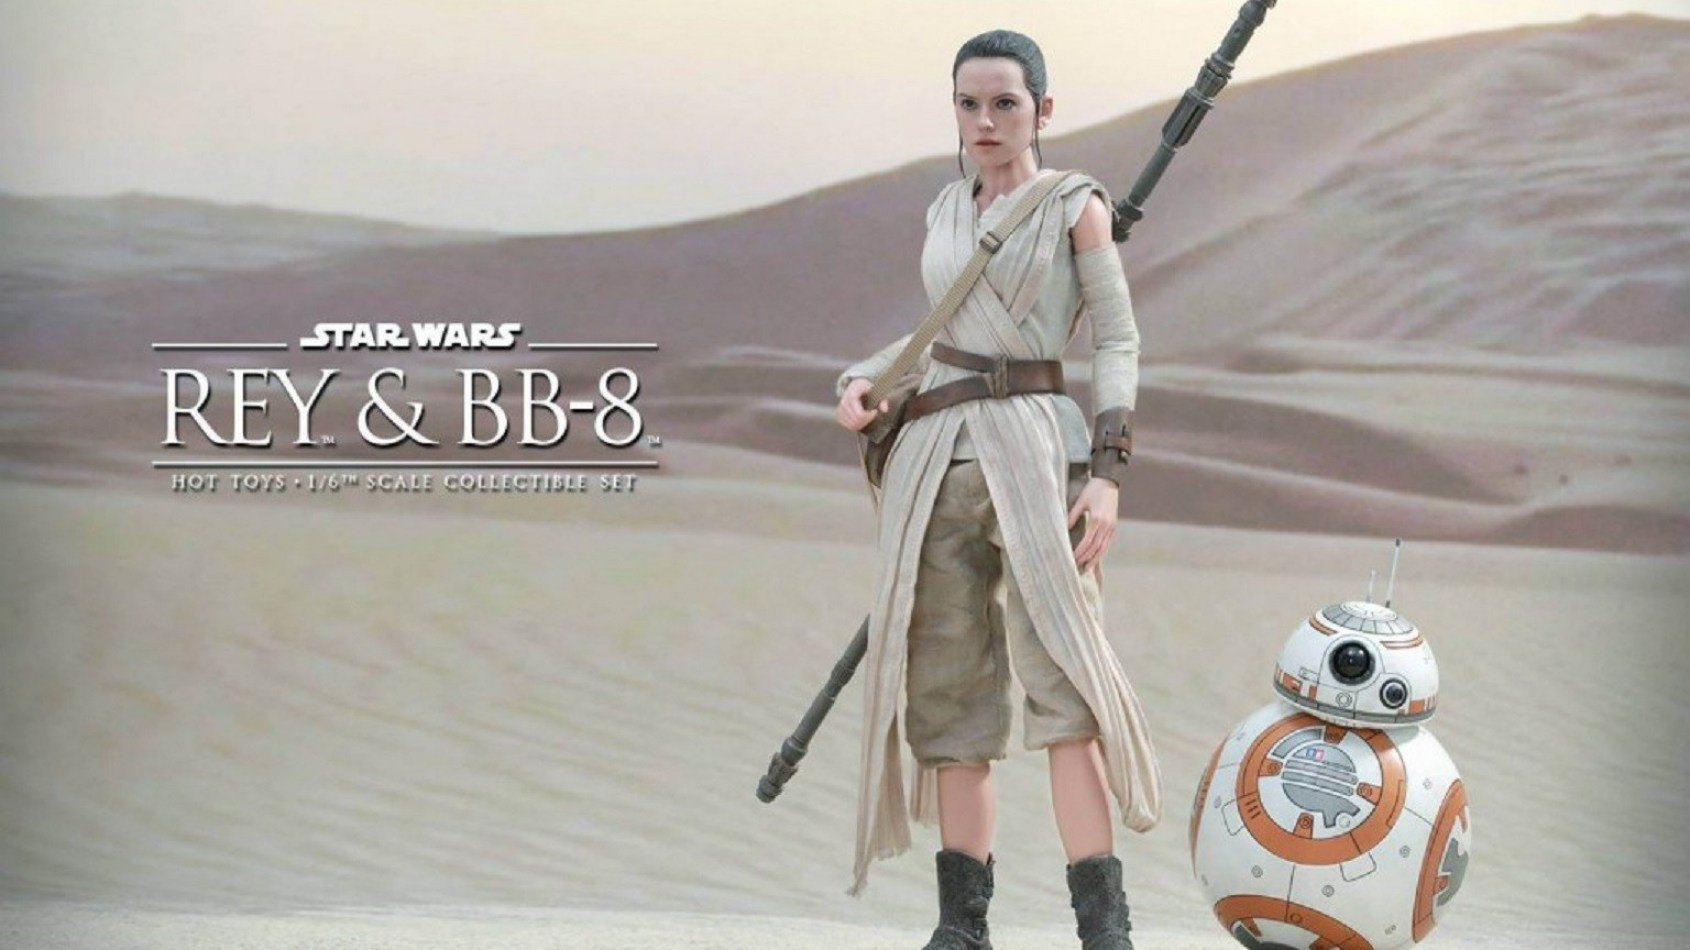 [Hot Toys] The Force Awakens 6th scale Rey & BB-8 Collectible Set preview